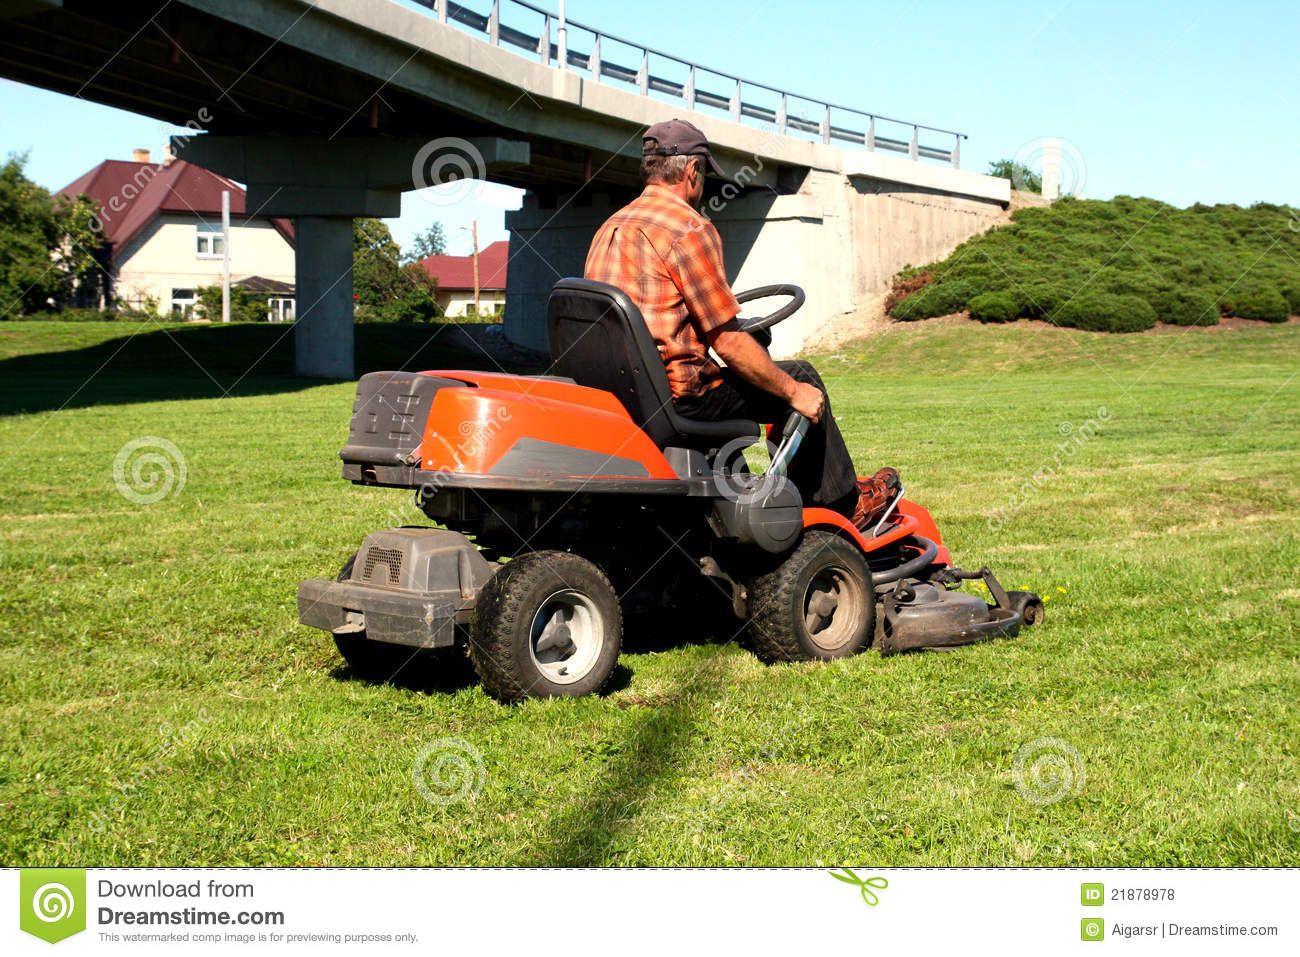 Man On Tractor Lawn Enforcment : Man on a lawn tractor stock photo image of